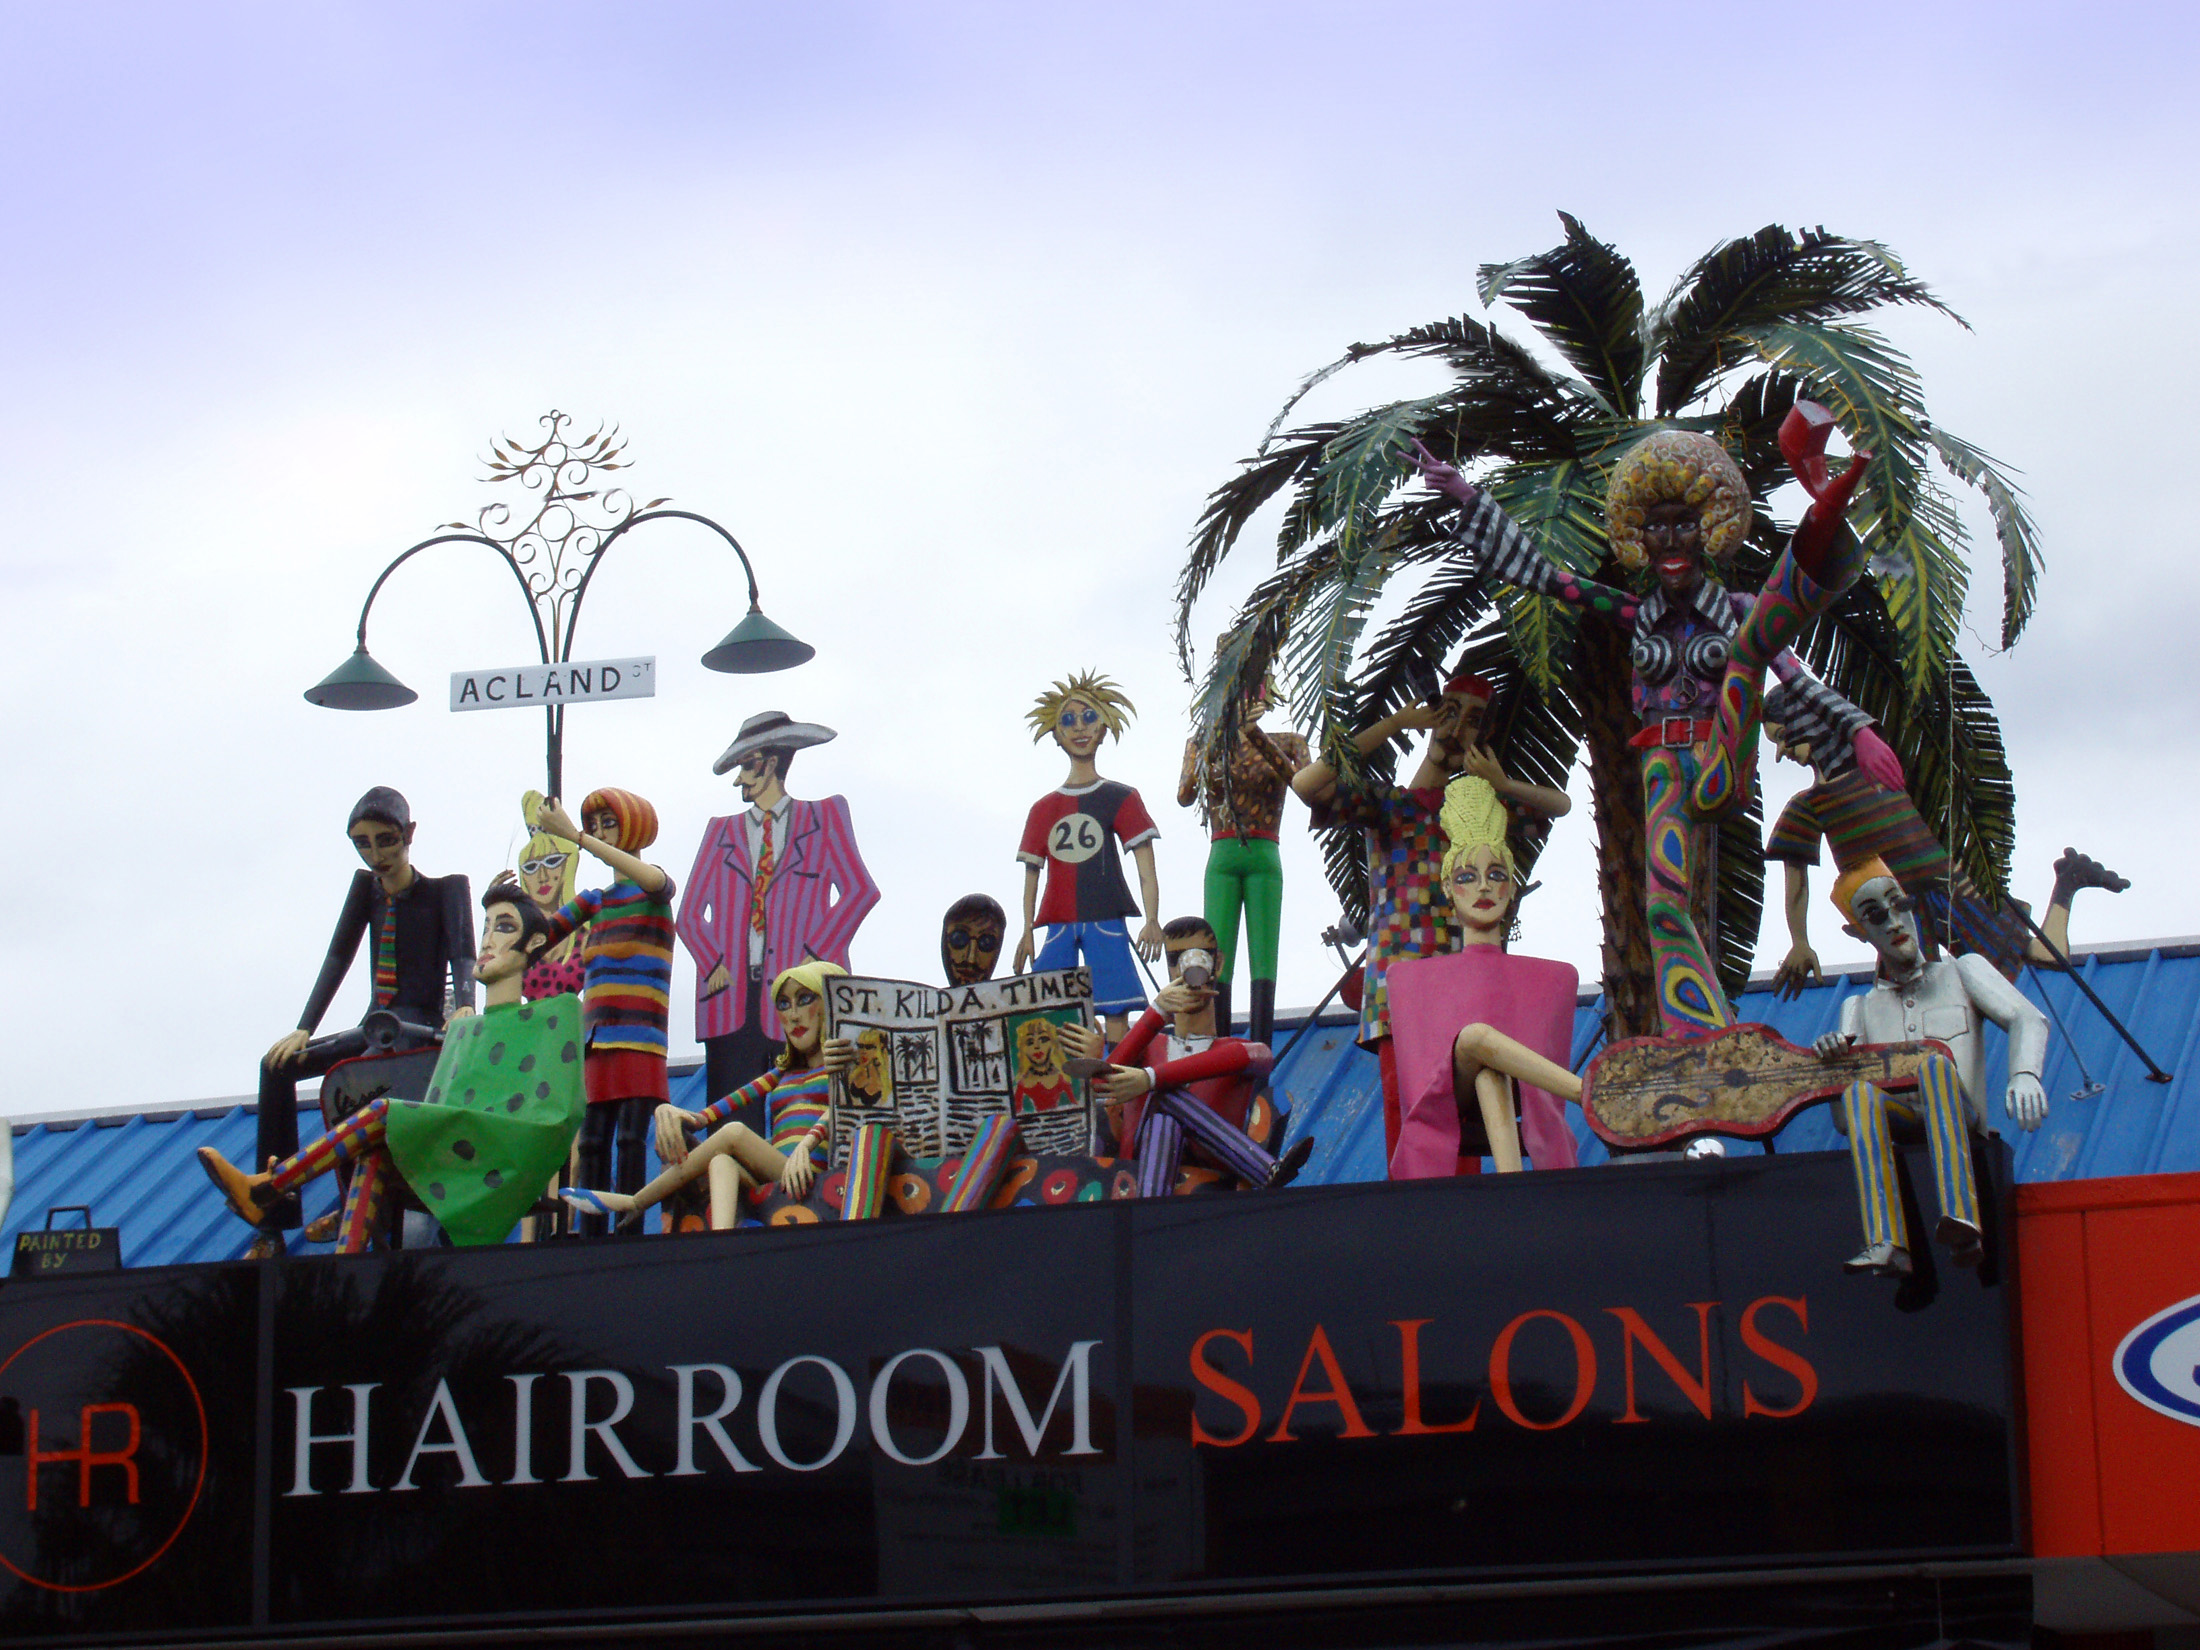 Hairroom Salon Building Signage with Artistic Human Sculptures on Rooftop at St Kilda in Melbourne, Australia.